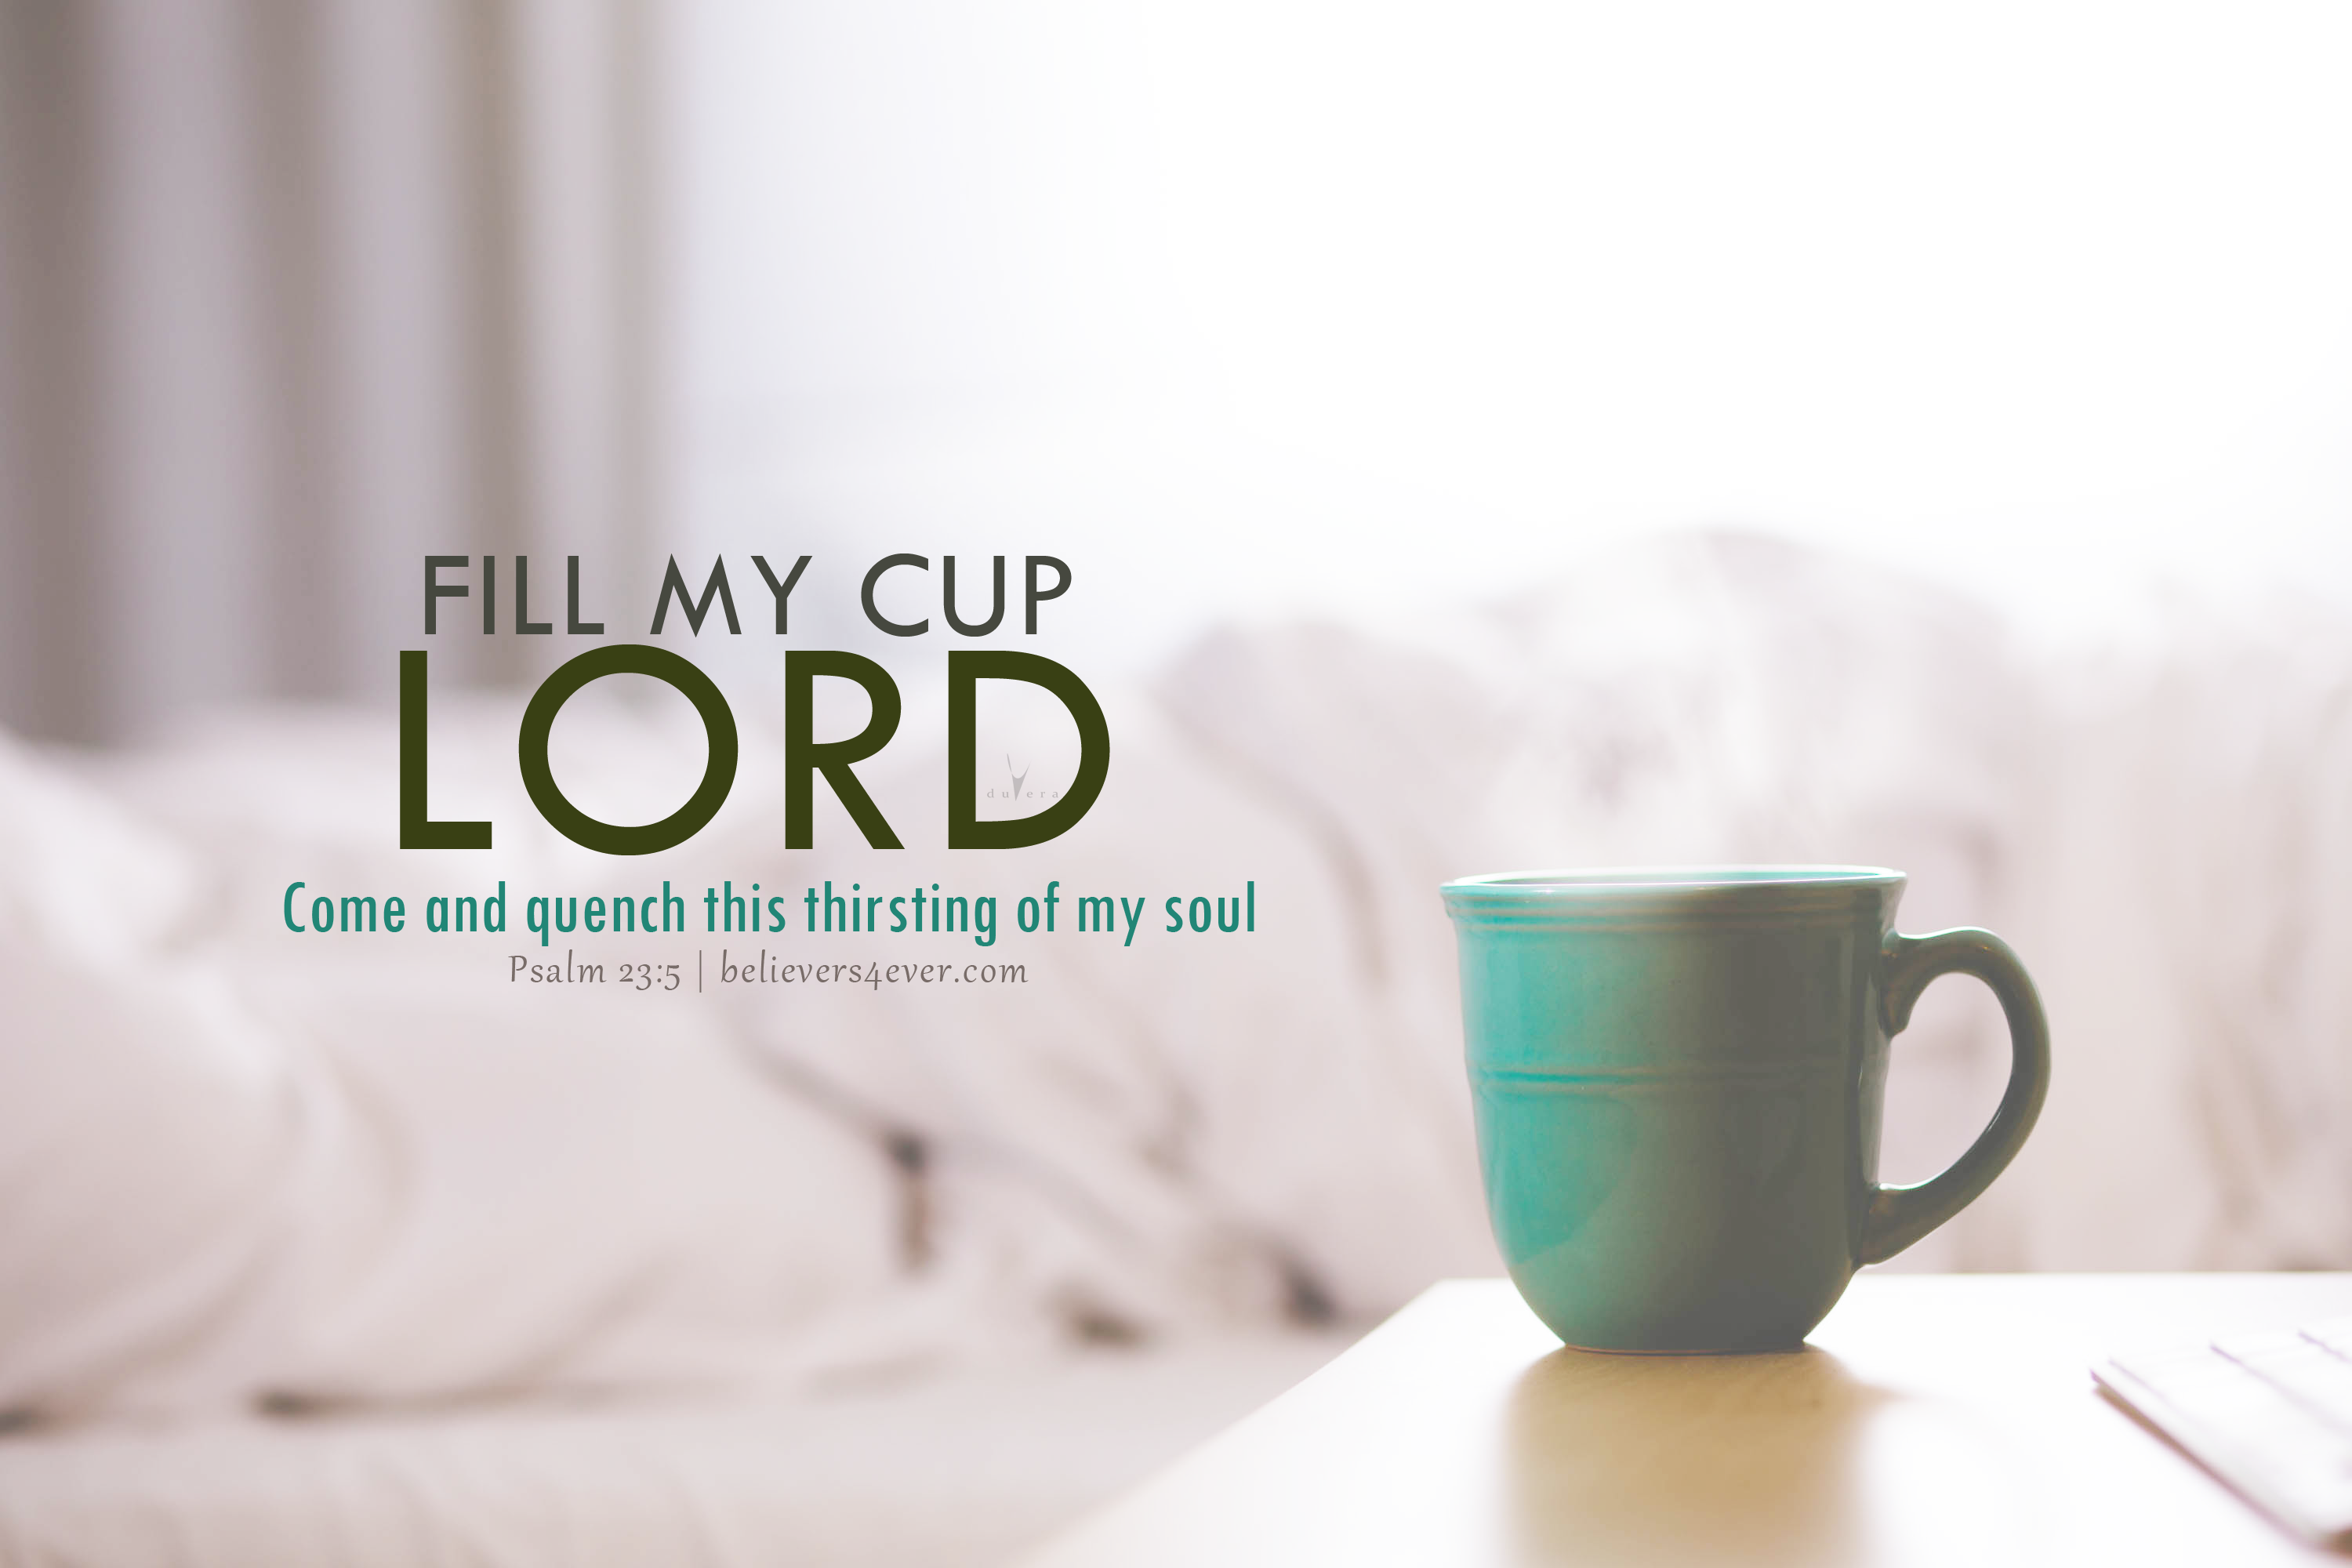 Fill my cup Lord Christian desktop wallpaper for laptop and computers